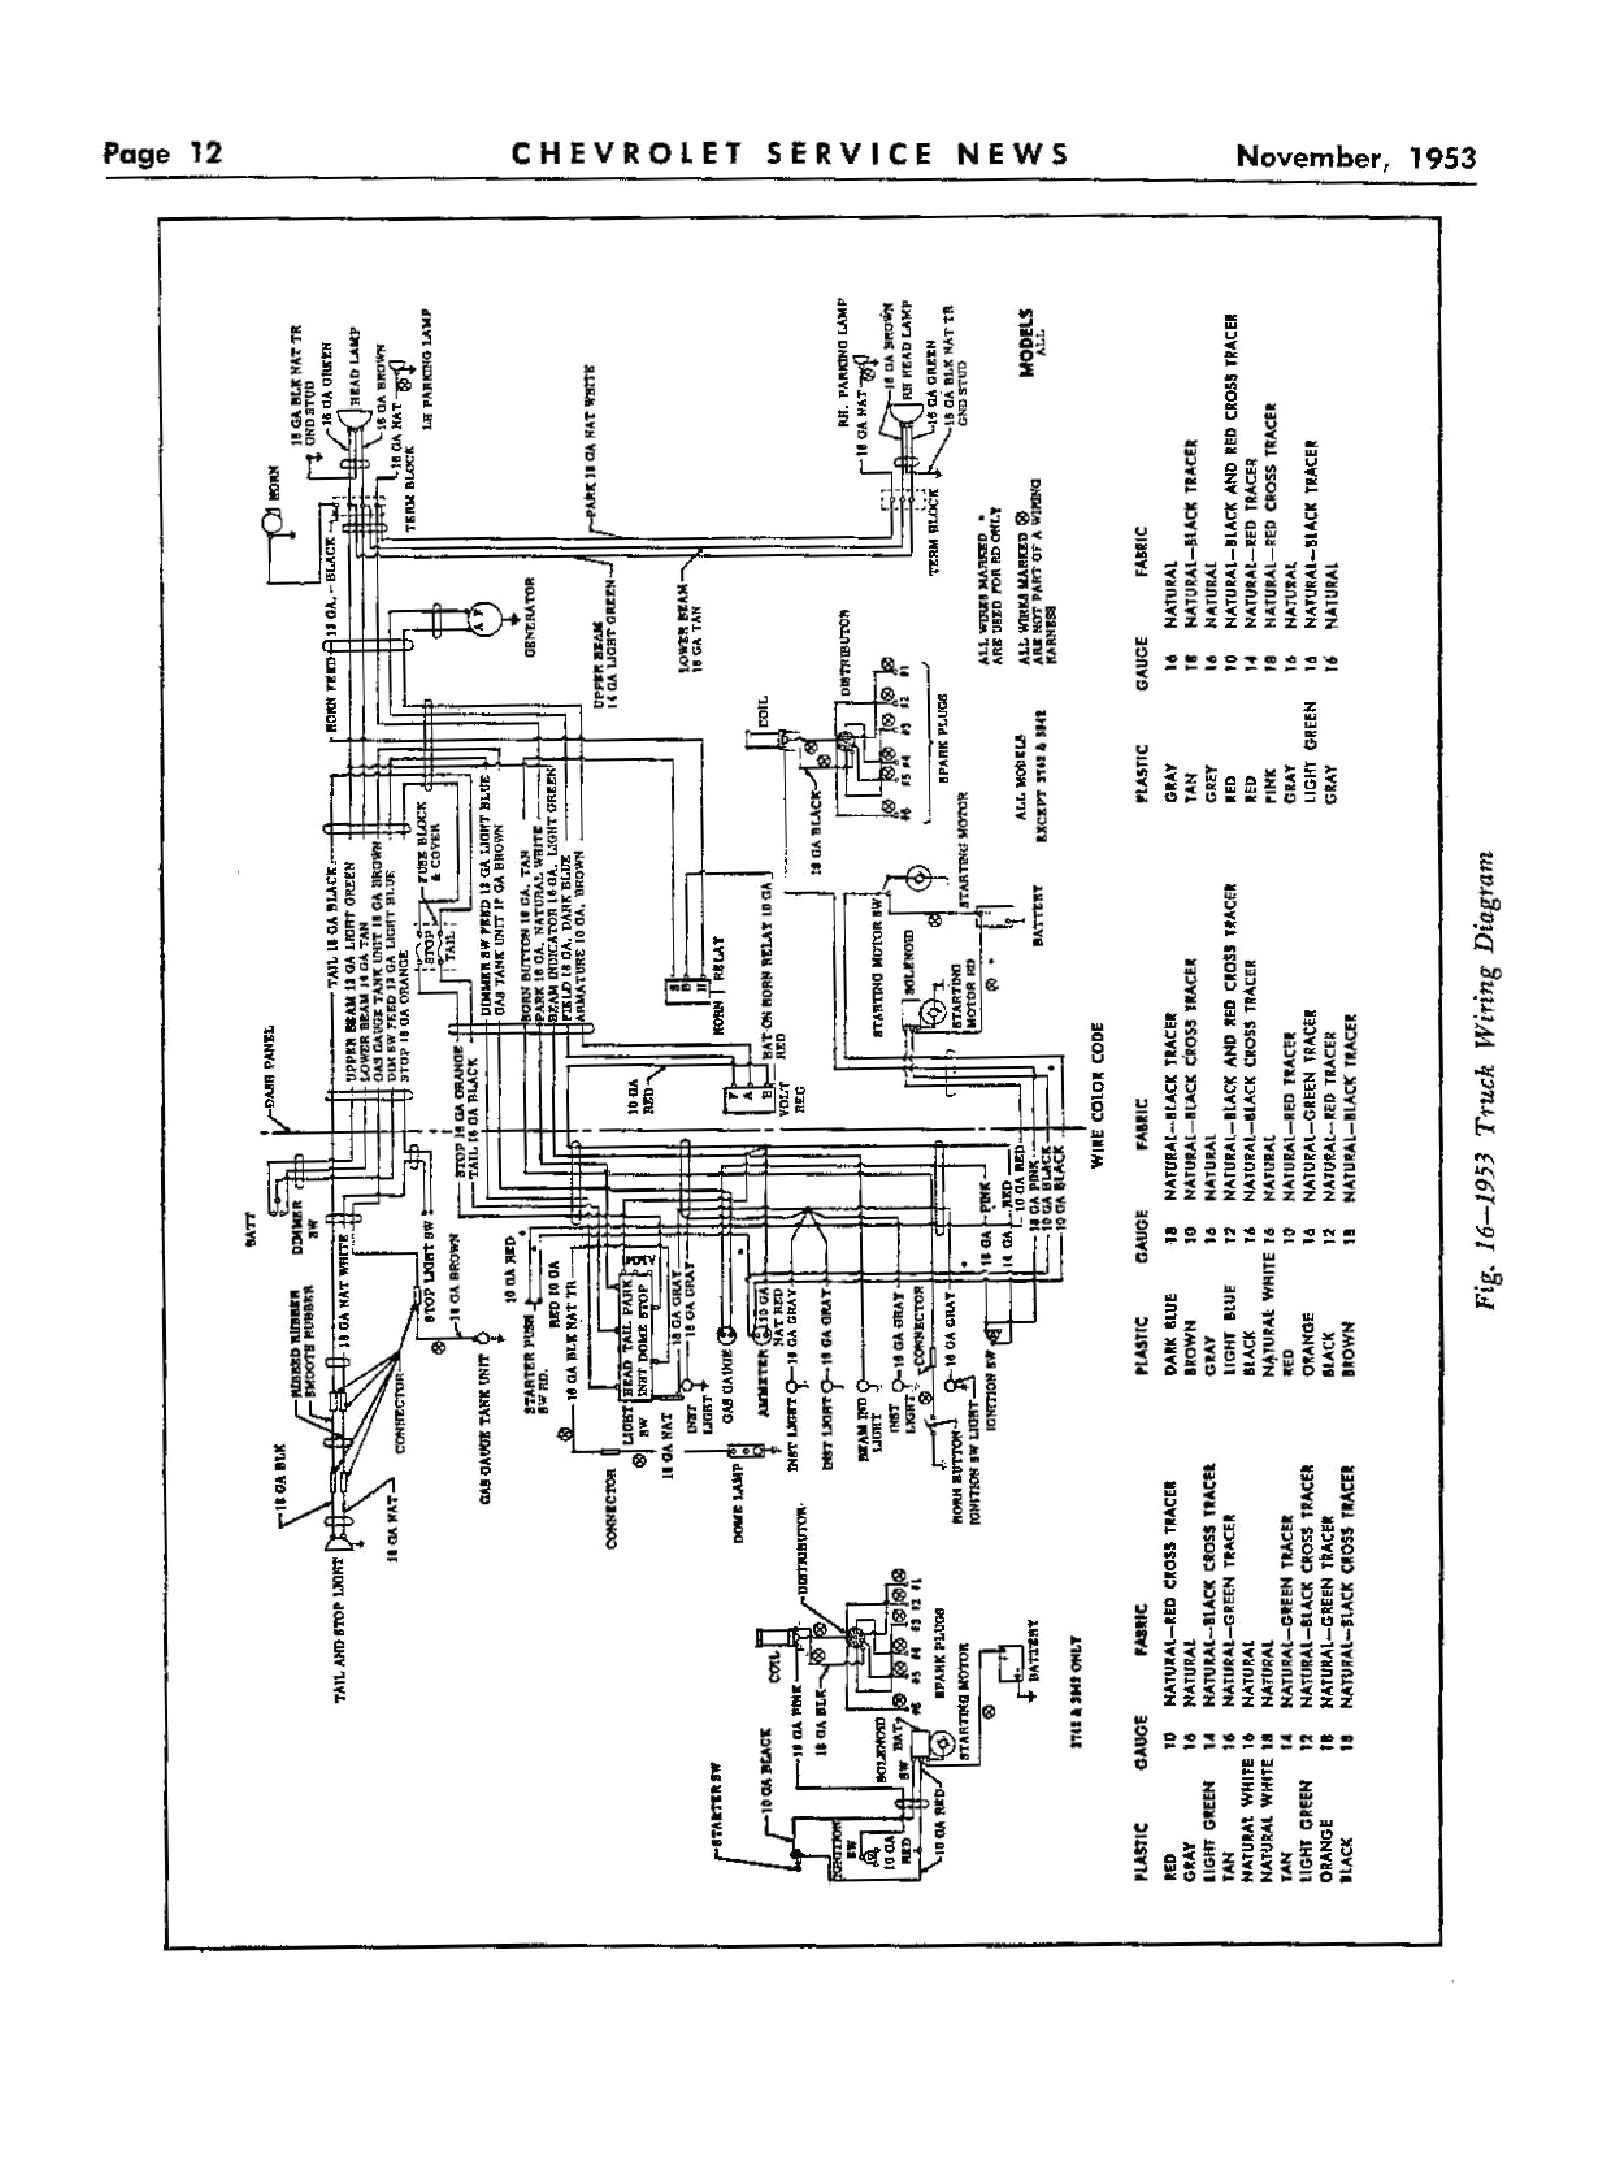 1956 Chevrolet Heater Wiring Diagrams Car Explained Corvette Diagram For 1954 Ford Truck Also With 1950 Chevy Rh Autonomia Co